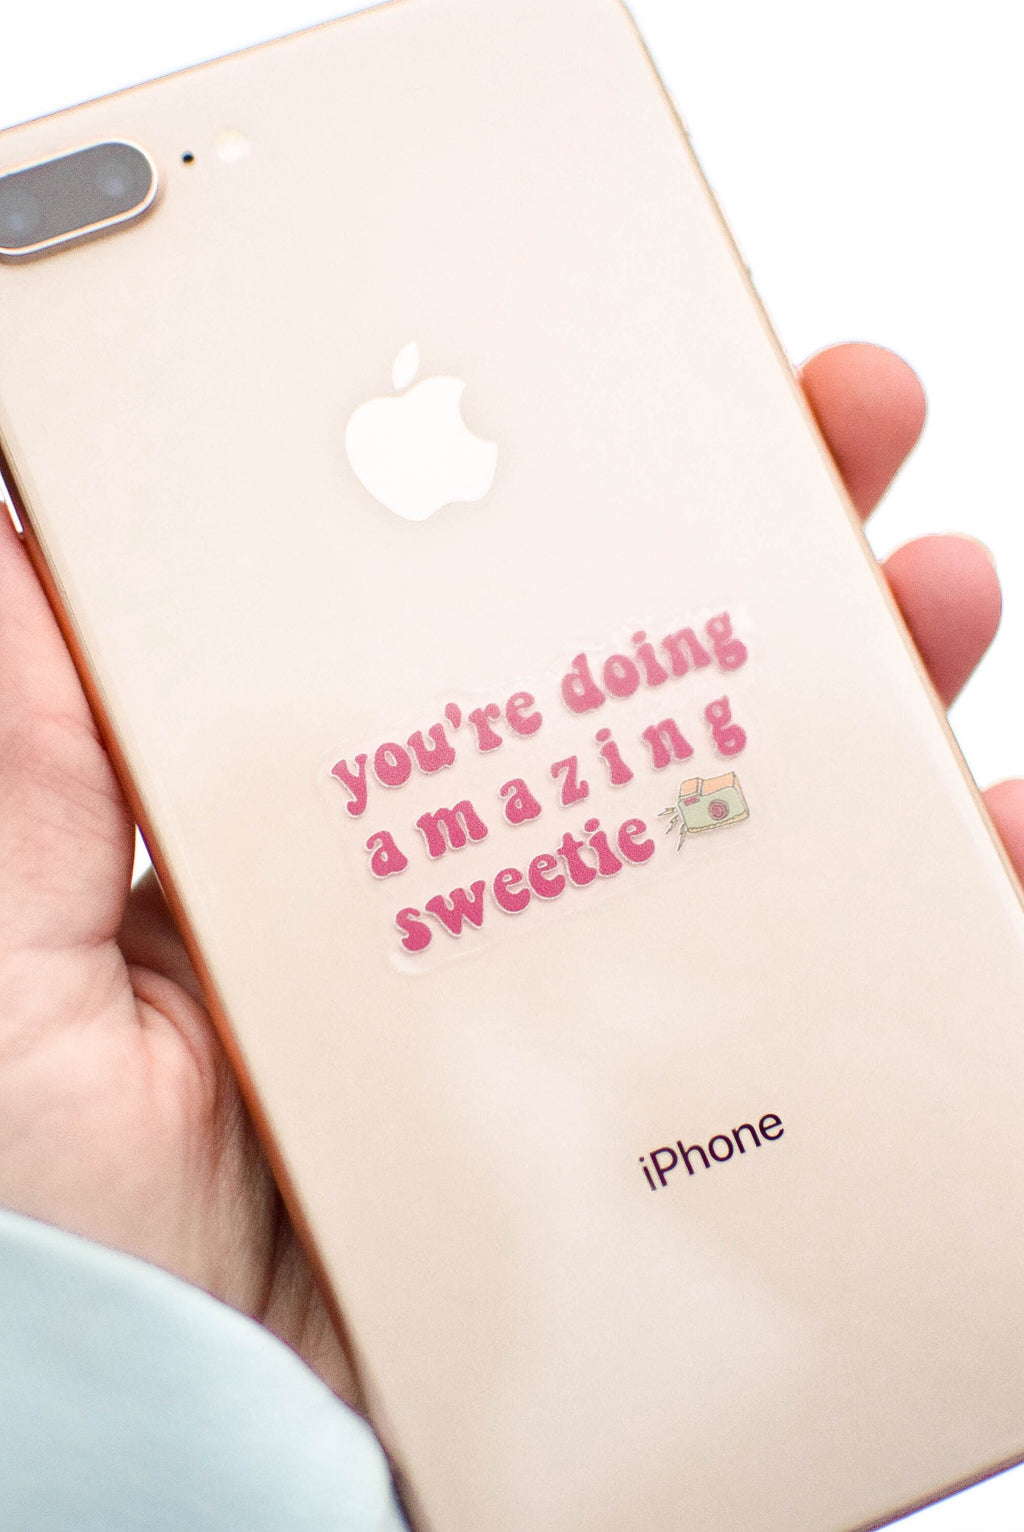 phone sticker